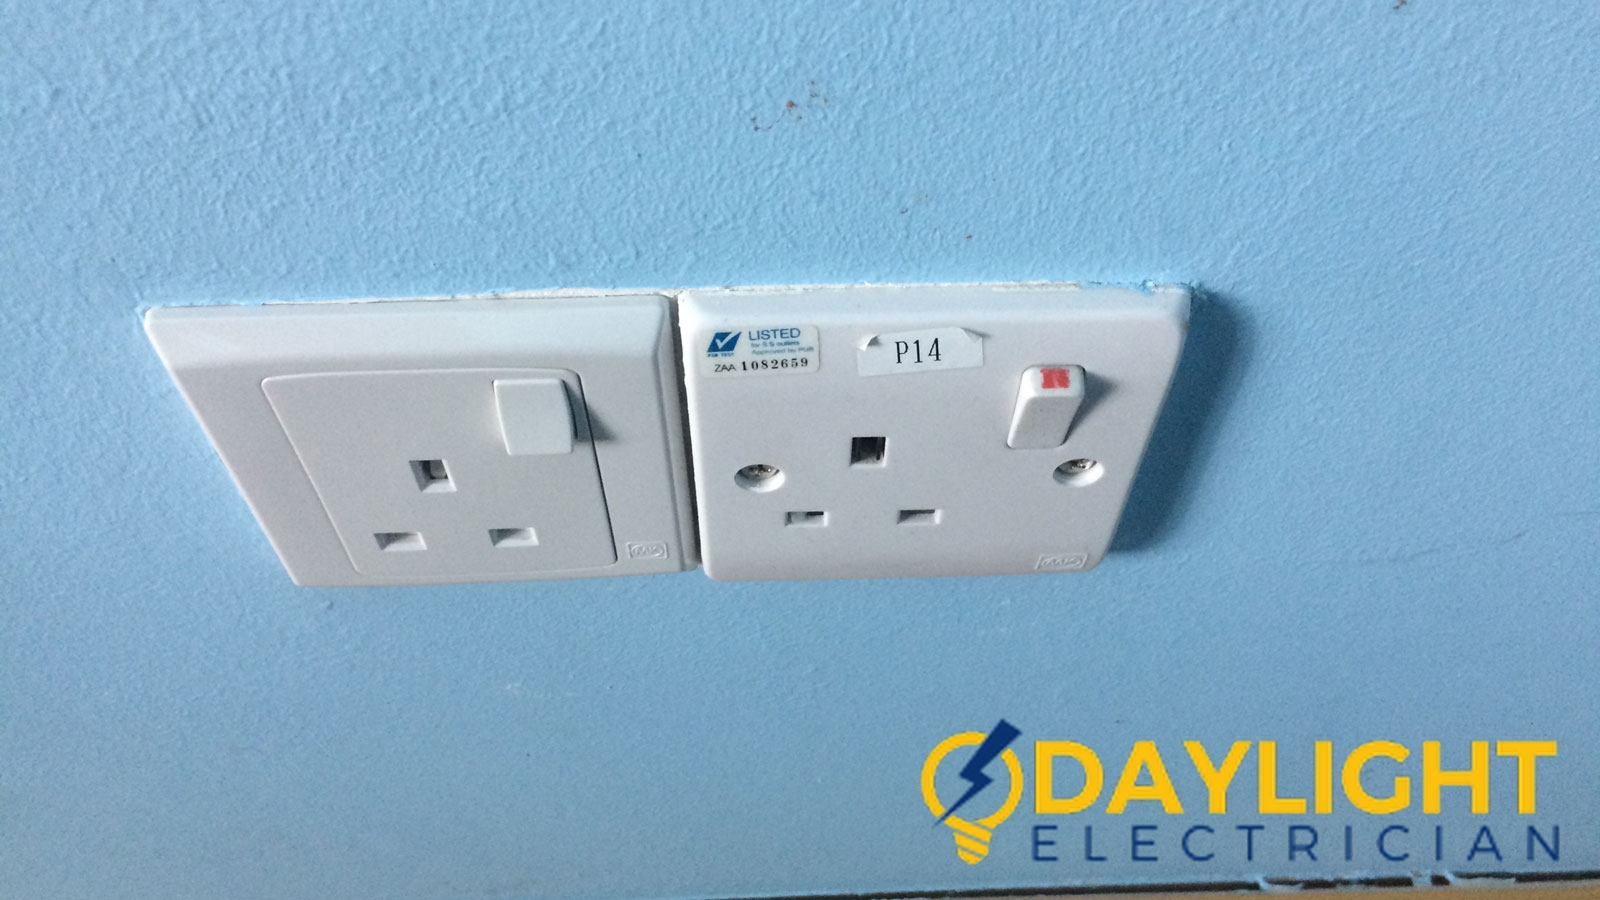 wall socket installation daylight electrician singapore condo jurong east 5